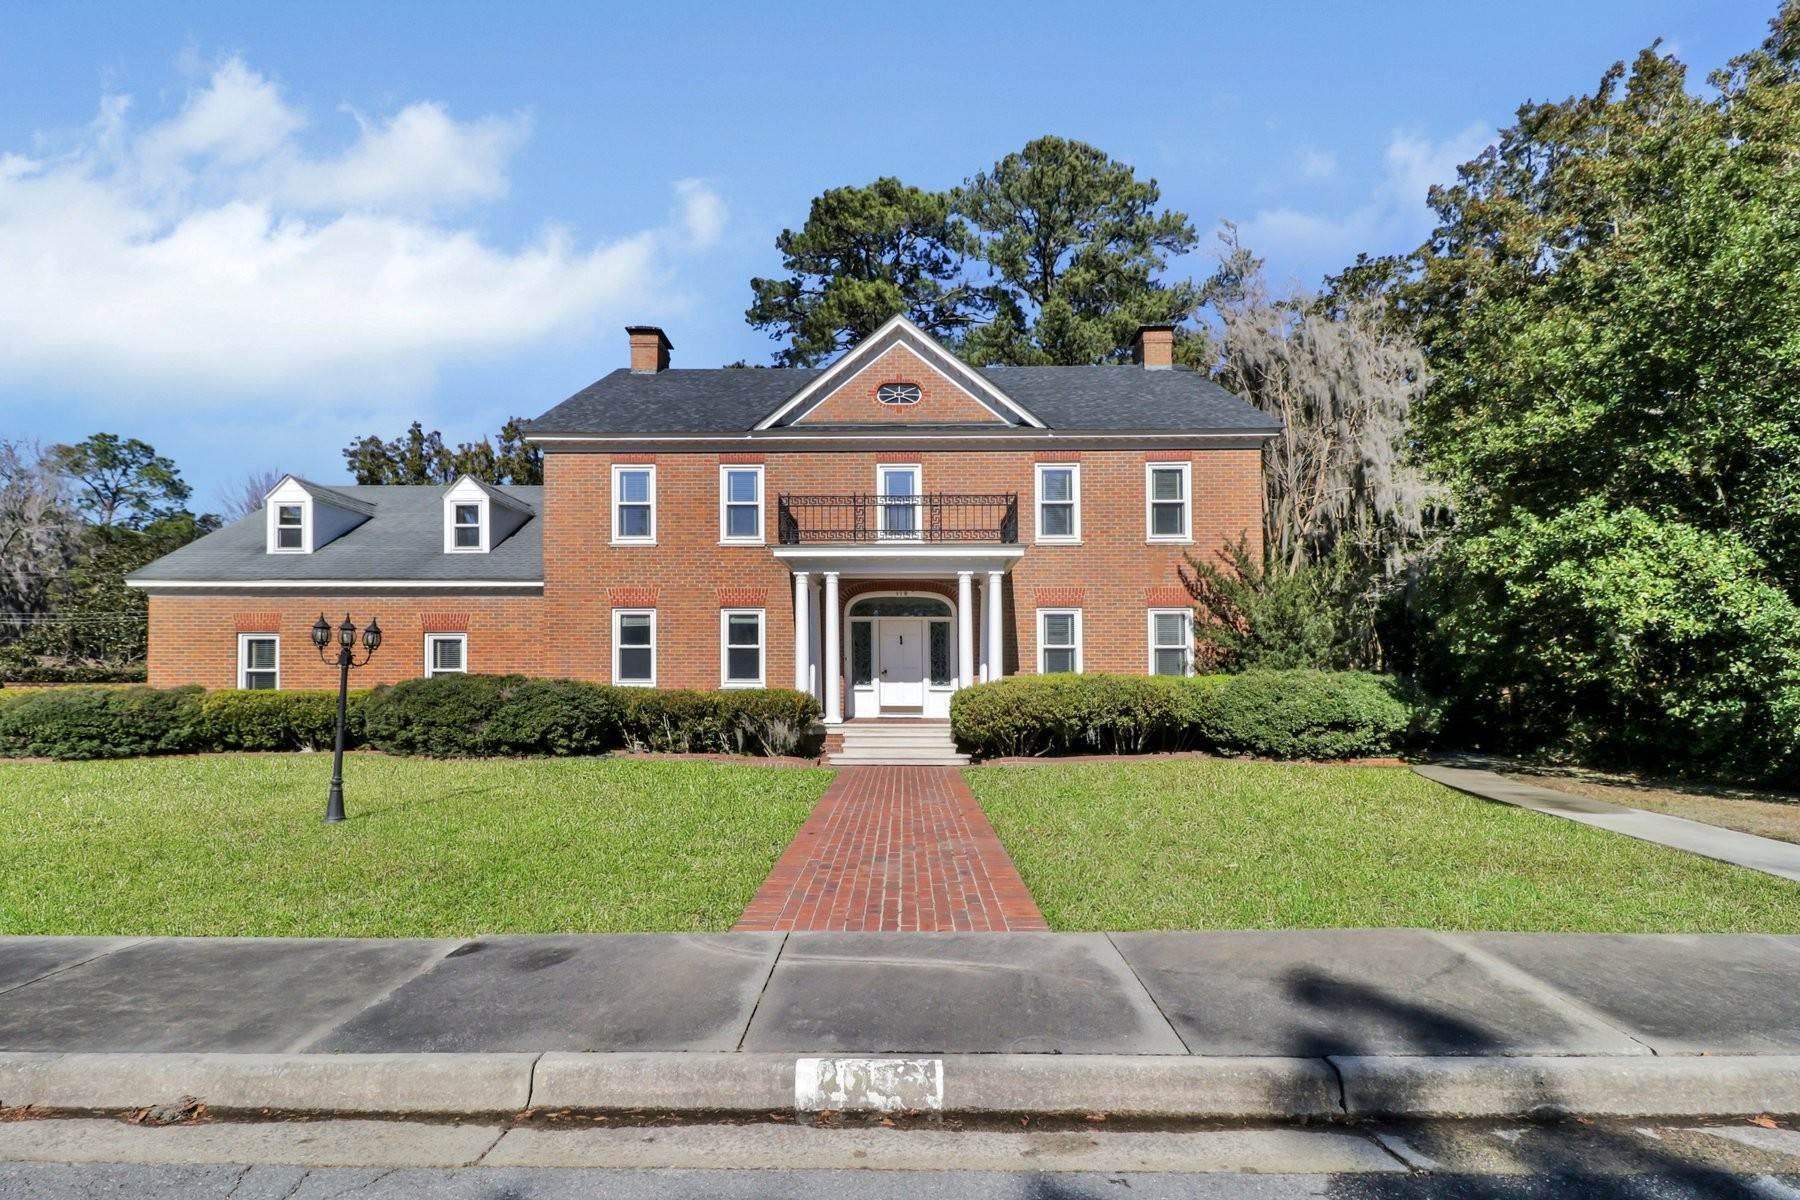 Single Family Homes for Sale at Lovely Traditional Brick Home In Habersham Woods 116 McLaws Street Savannah, Georgia 31405 United States